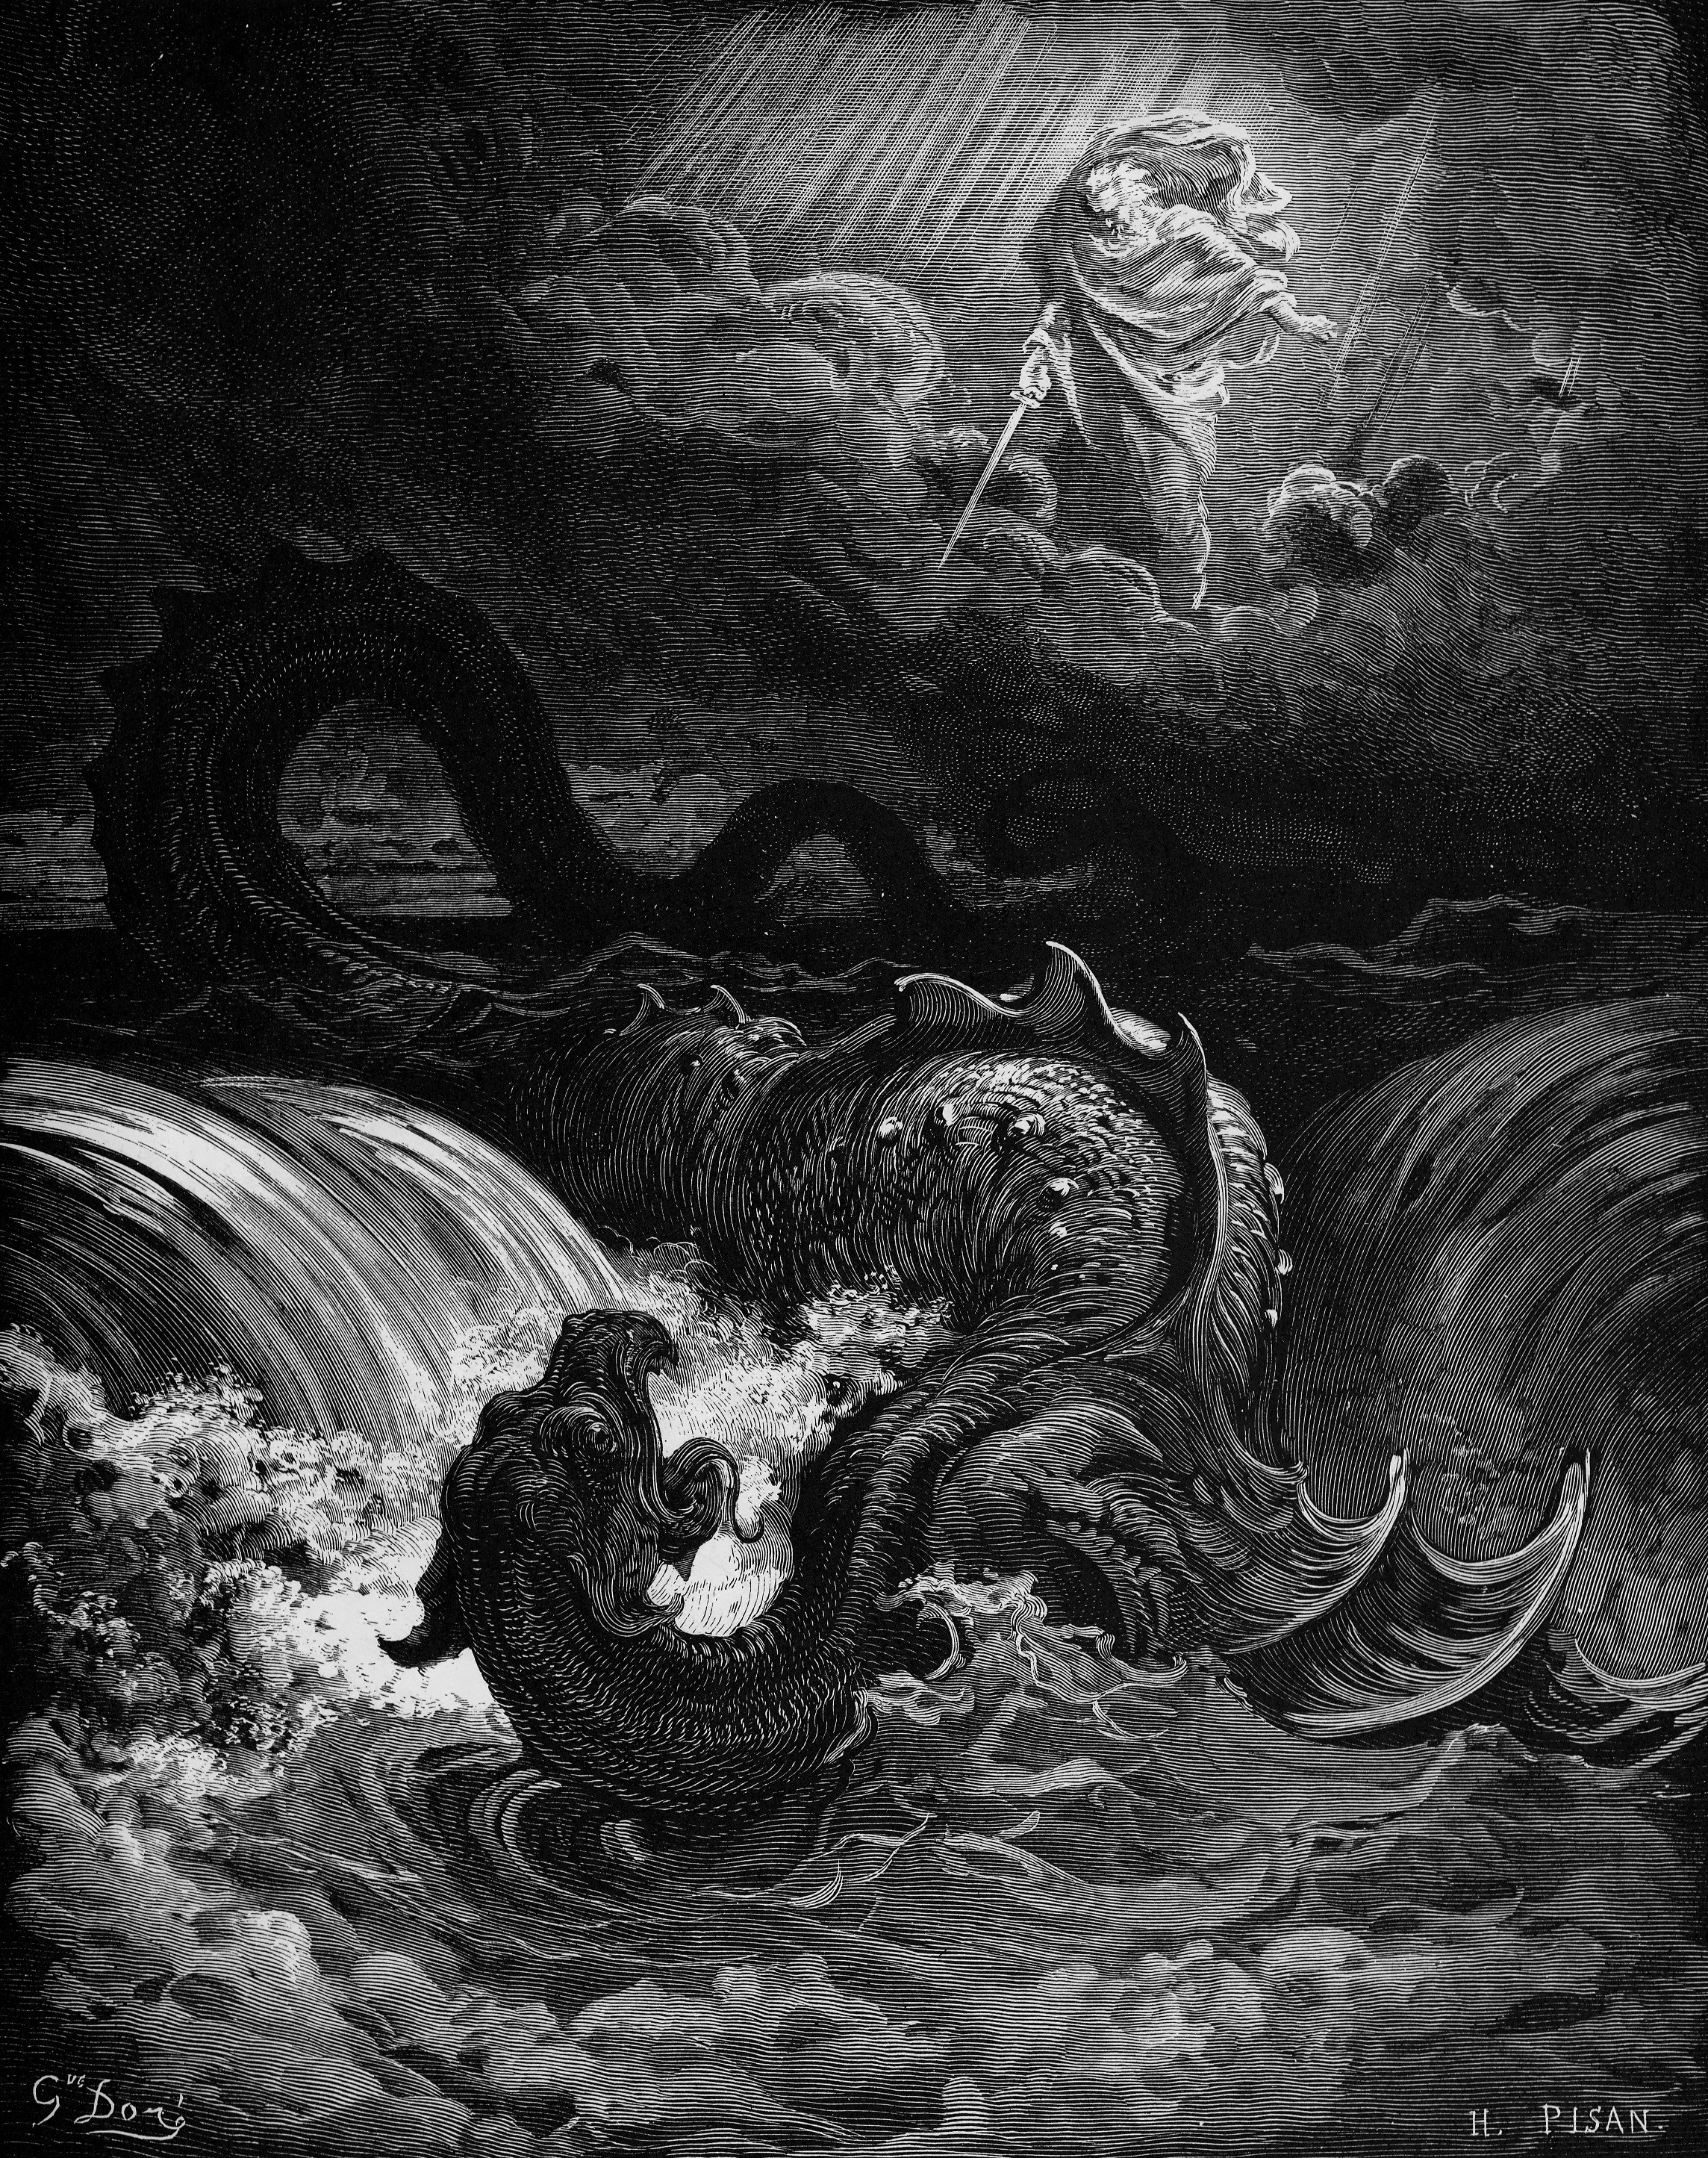 """Destruction of Leviathan"". 1865 engraving by Gustave Doré"